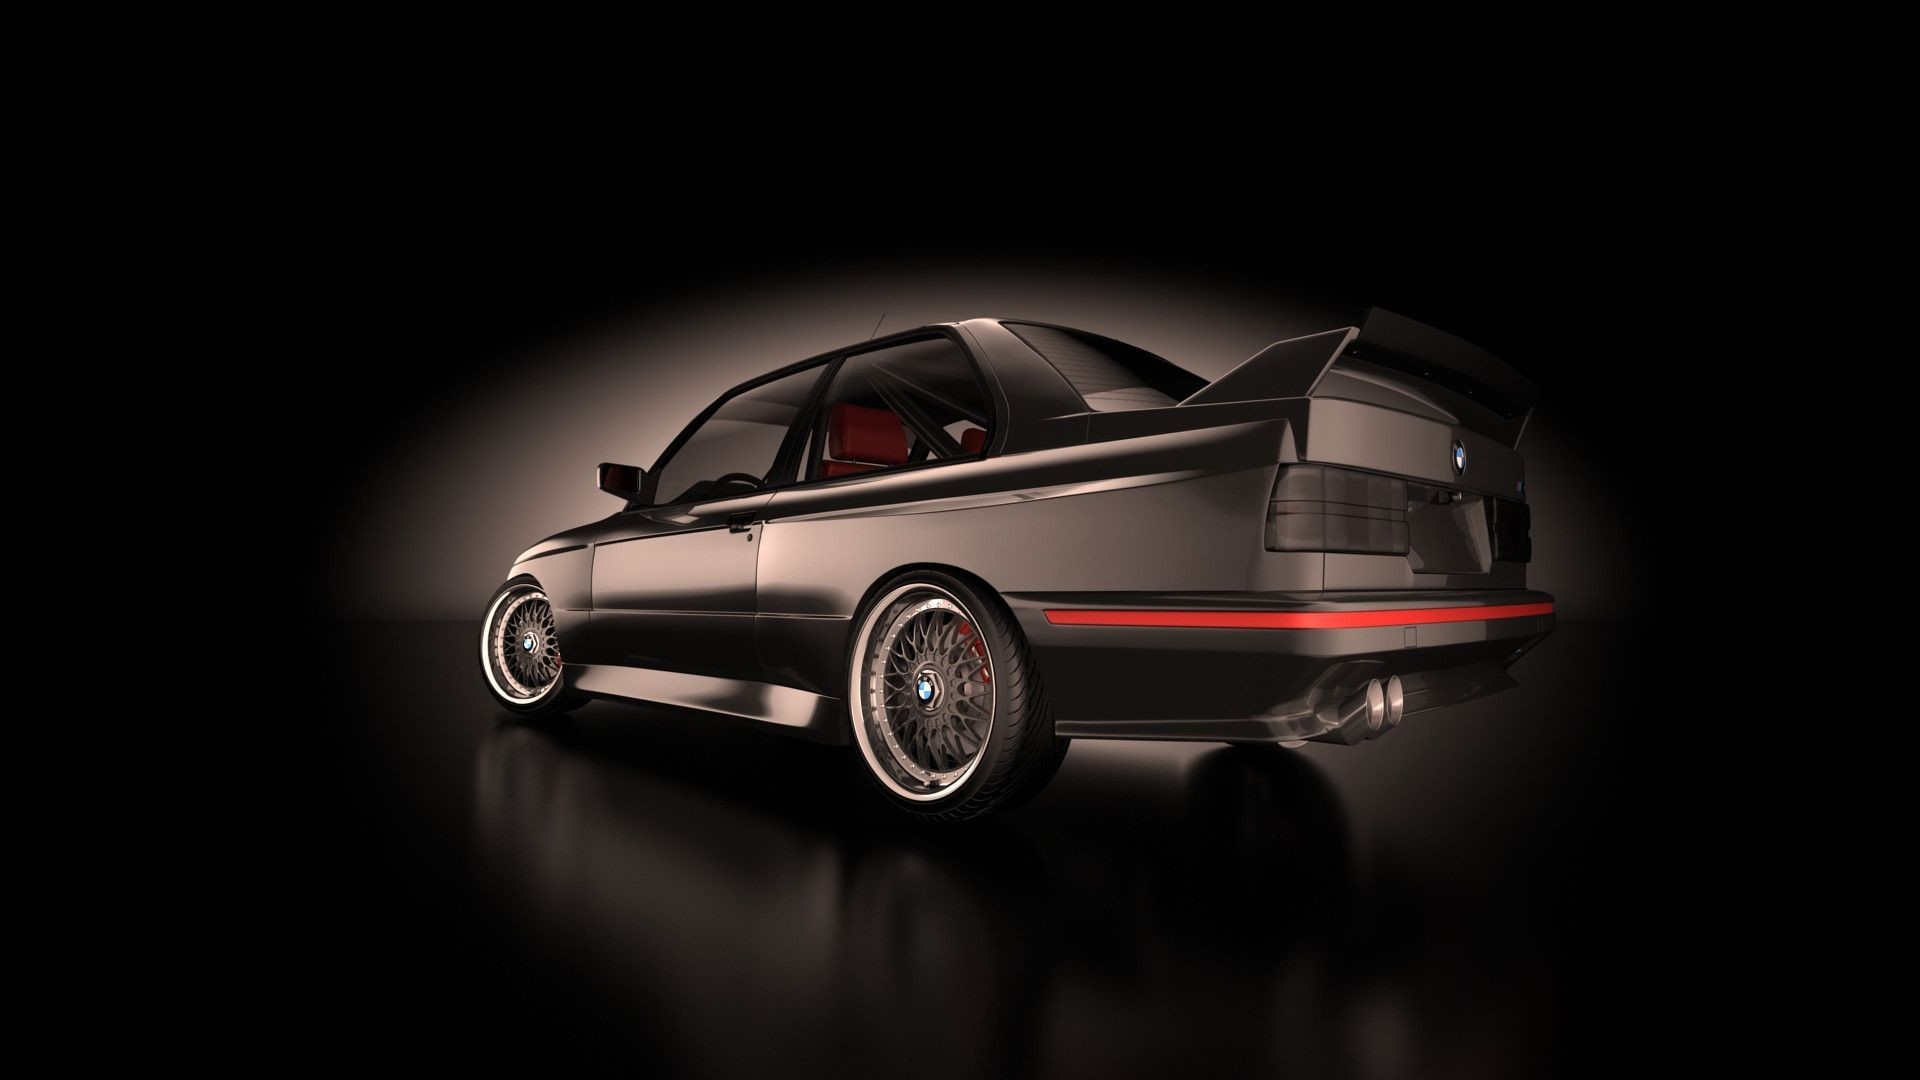 1920x1080 Bmw E30 Wallpapers HD.